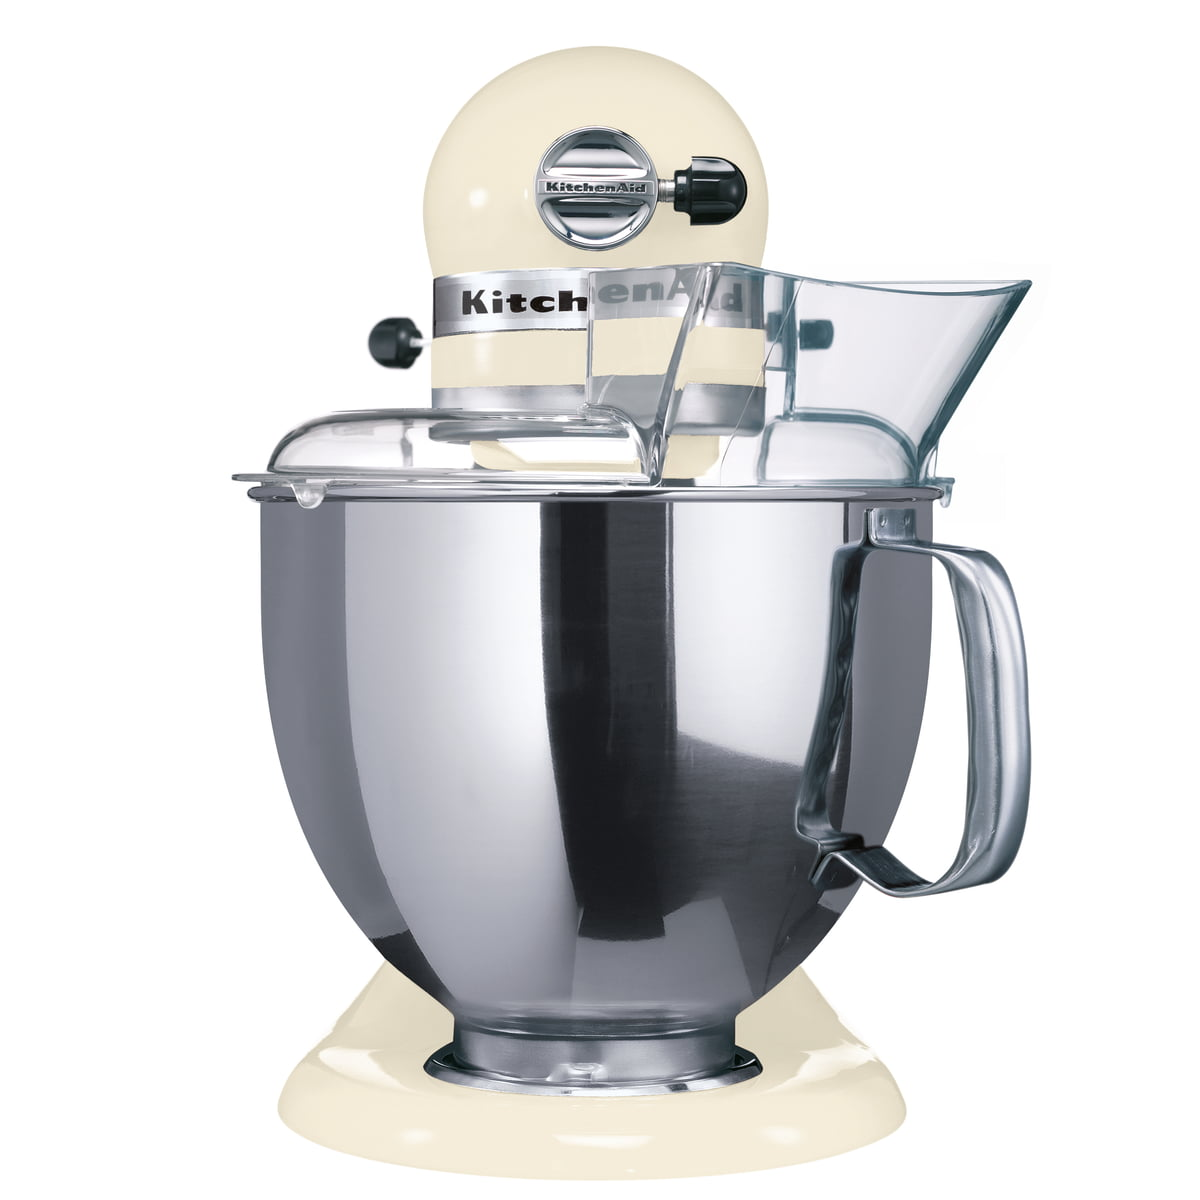 Artisan Kitchen Appliance 4,8 L By KitchenAid